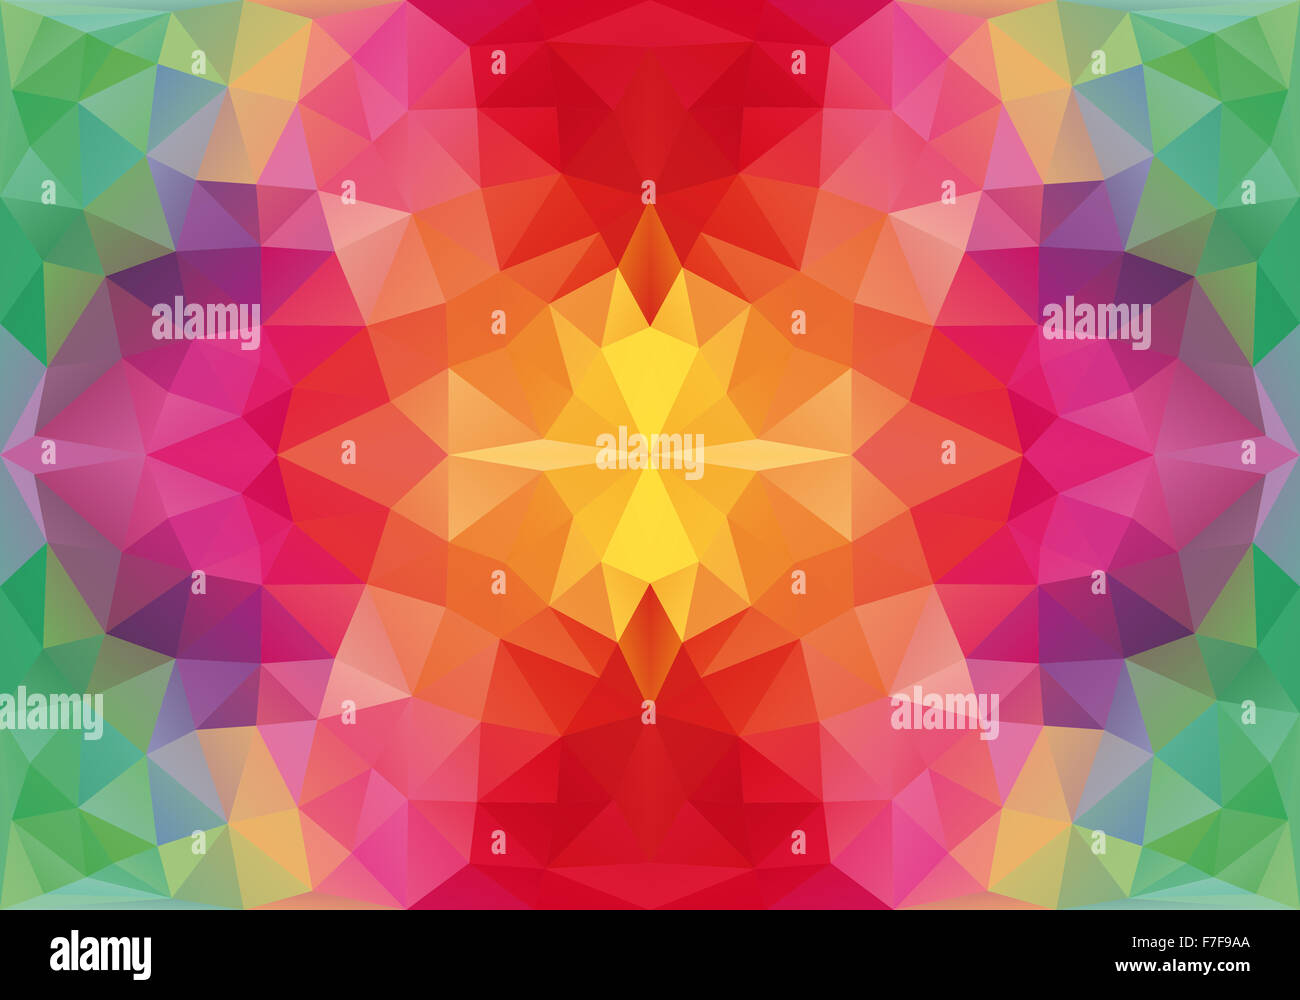 Abstract floral pattern, polygone géométrique fond vectoriel continu Photo Stock